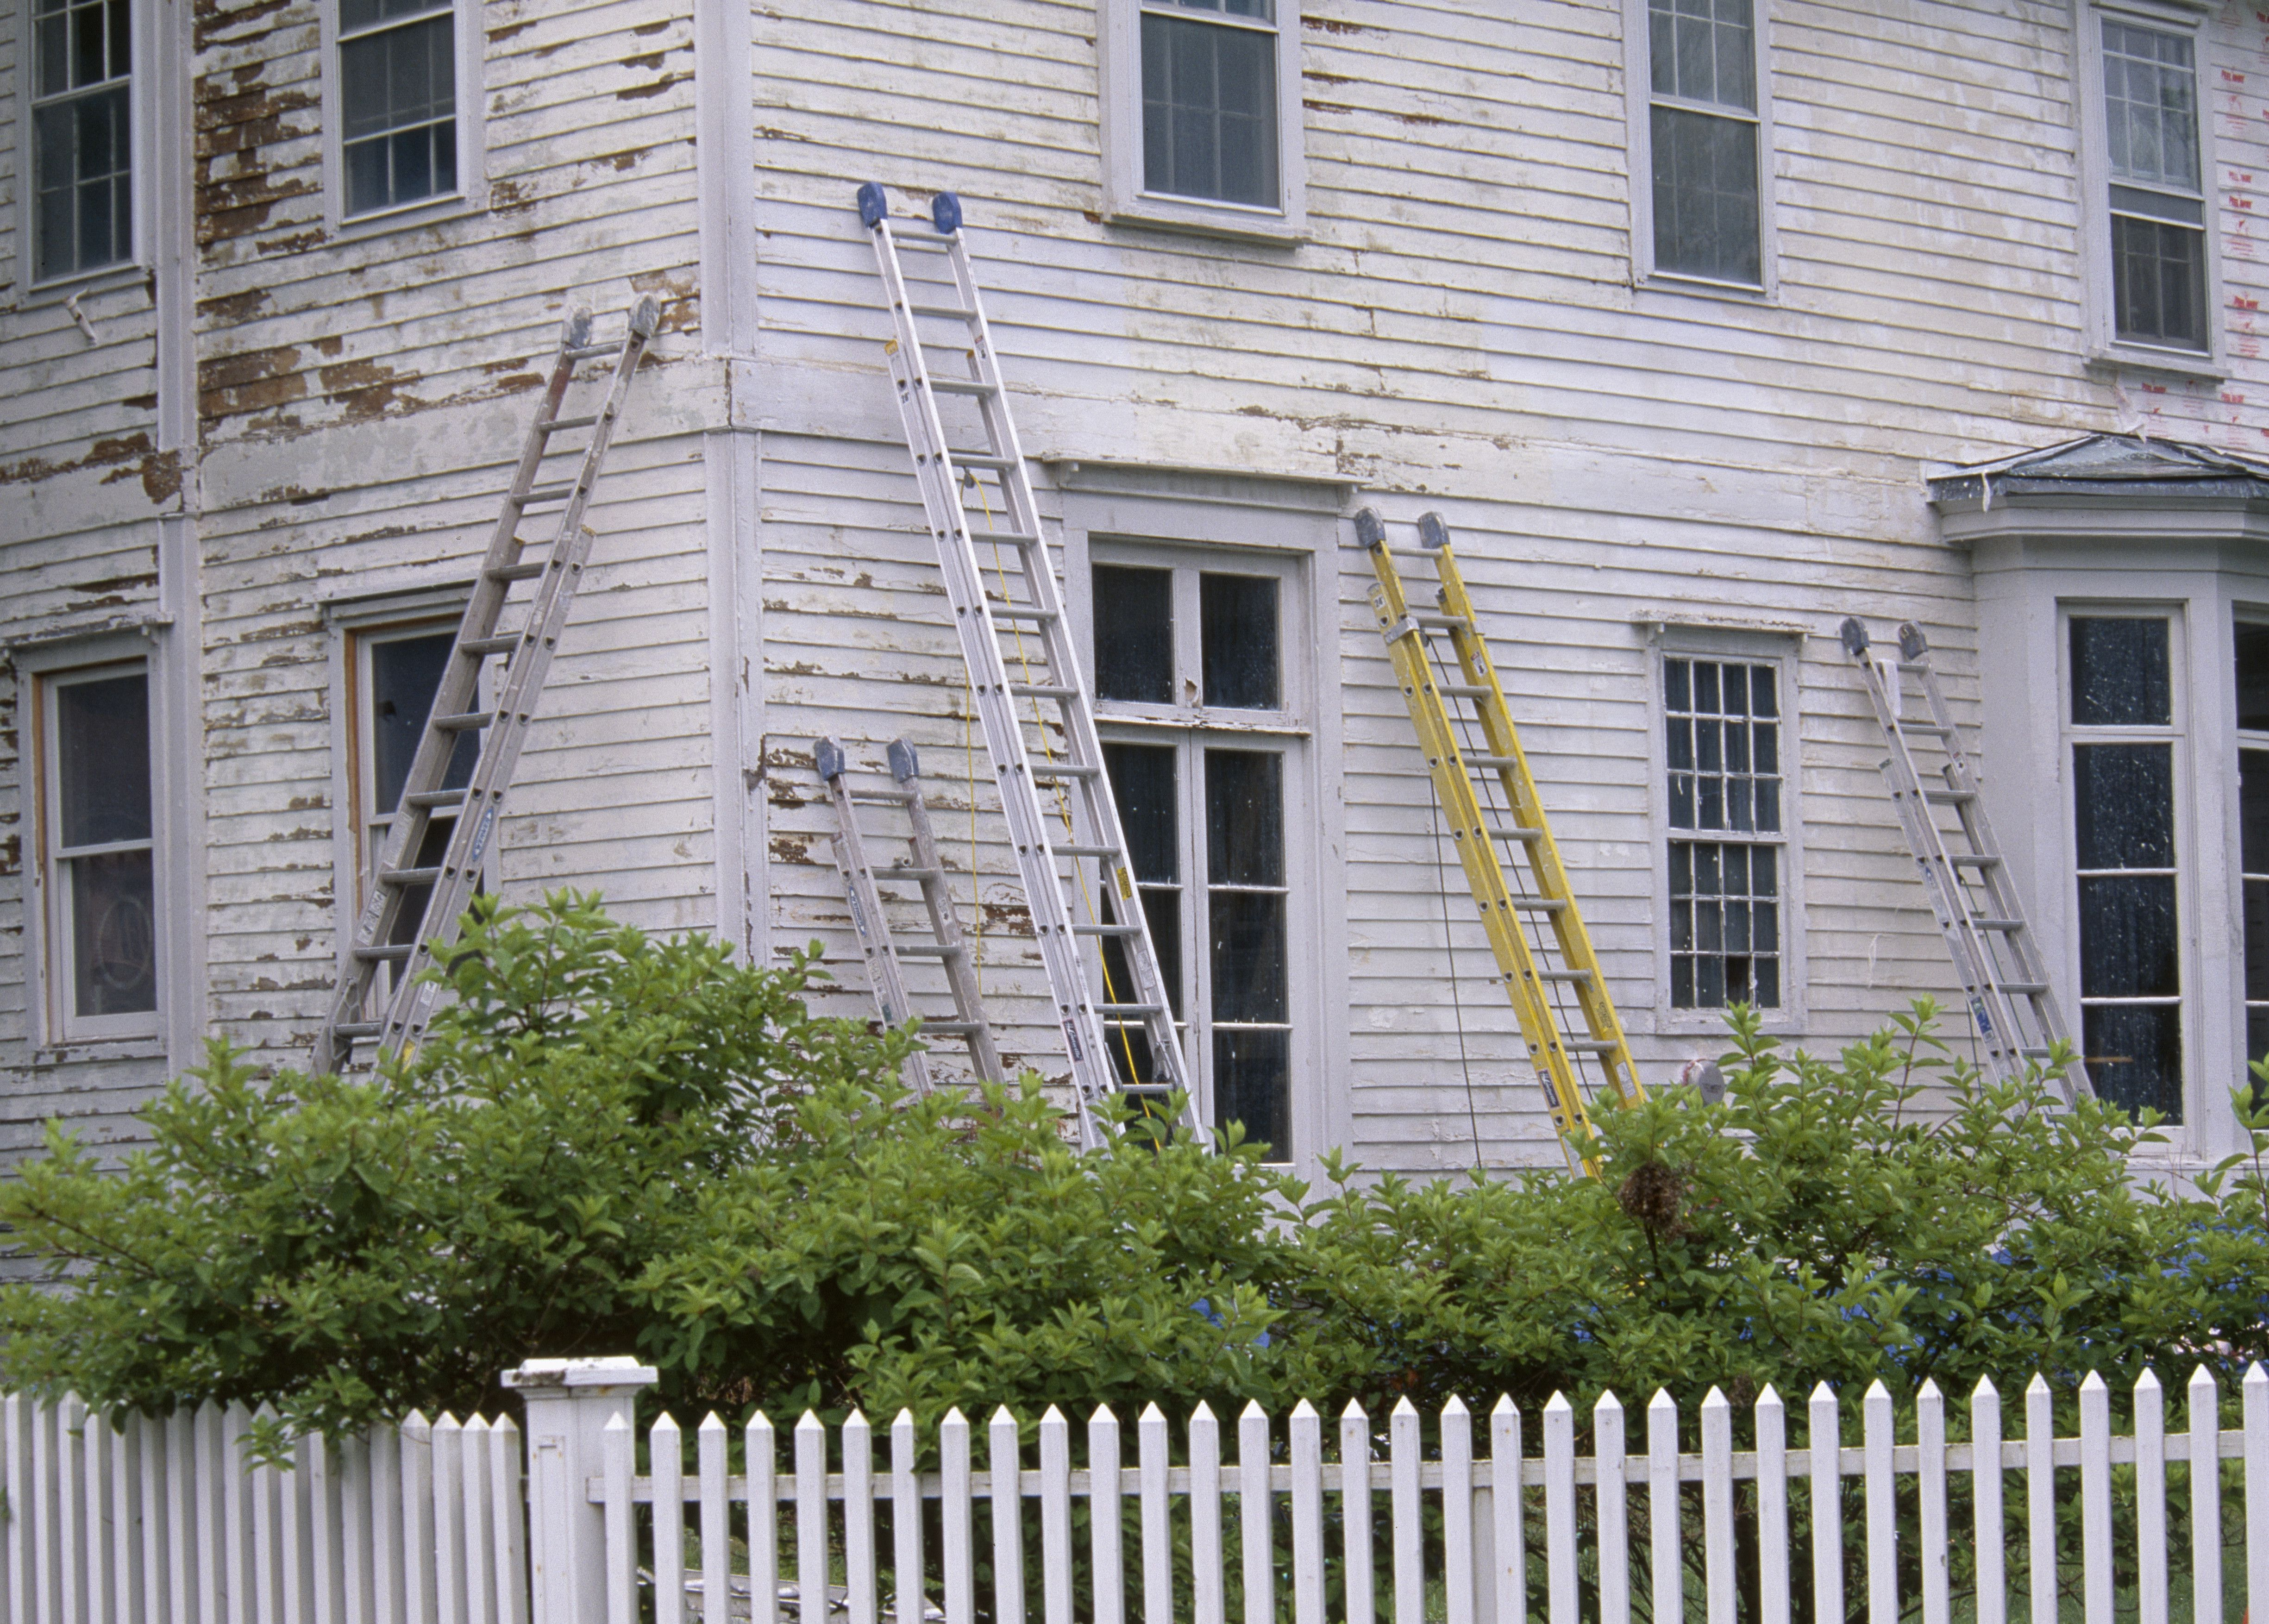 Ladders resting against old house